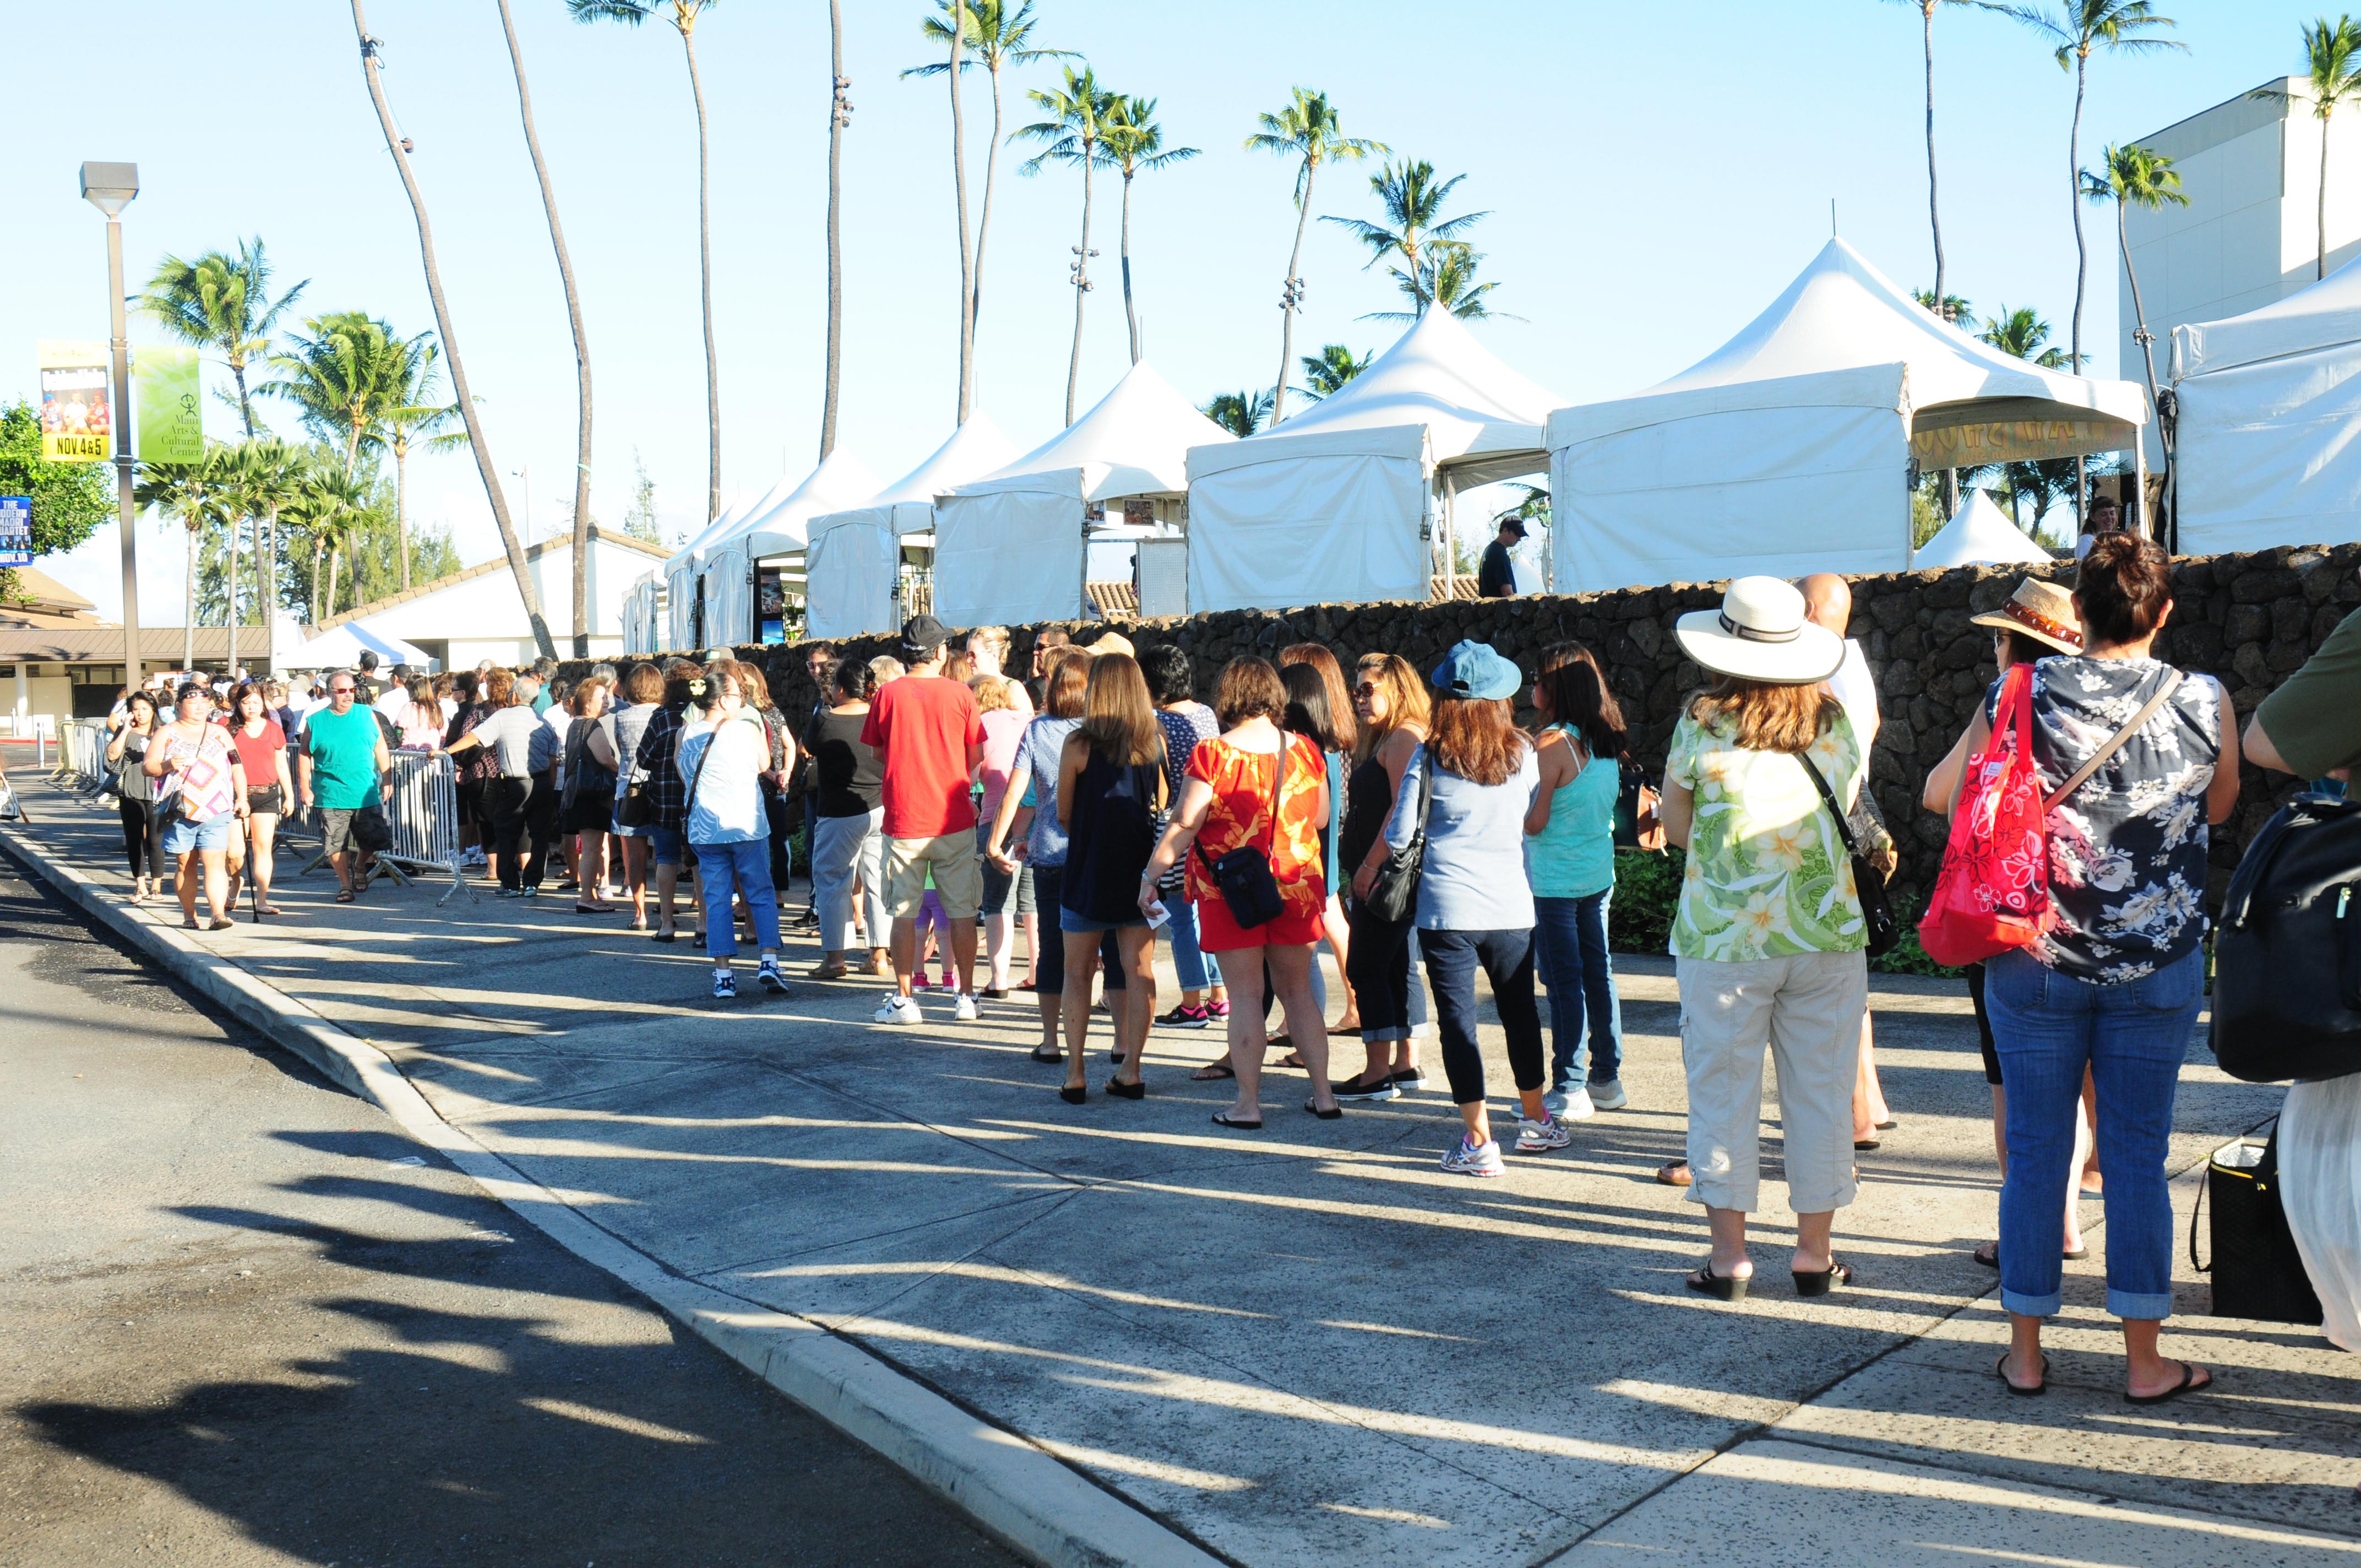 Before gates opened on Saturday, a long lined formed around the Maui Arts & Cultural Center. The first 2,000 people received a free Festival tote. Photo by Casey Nishikawa